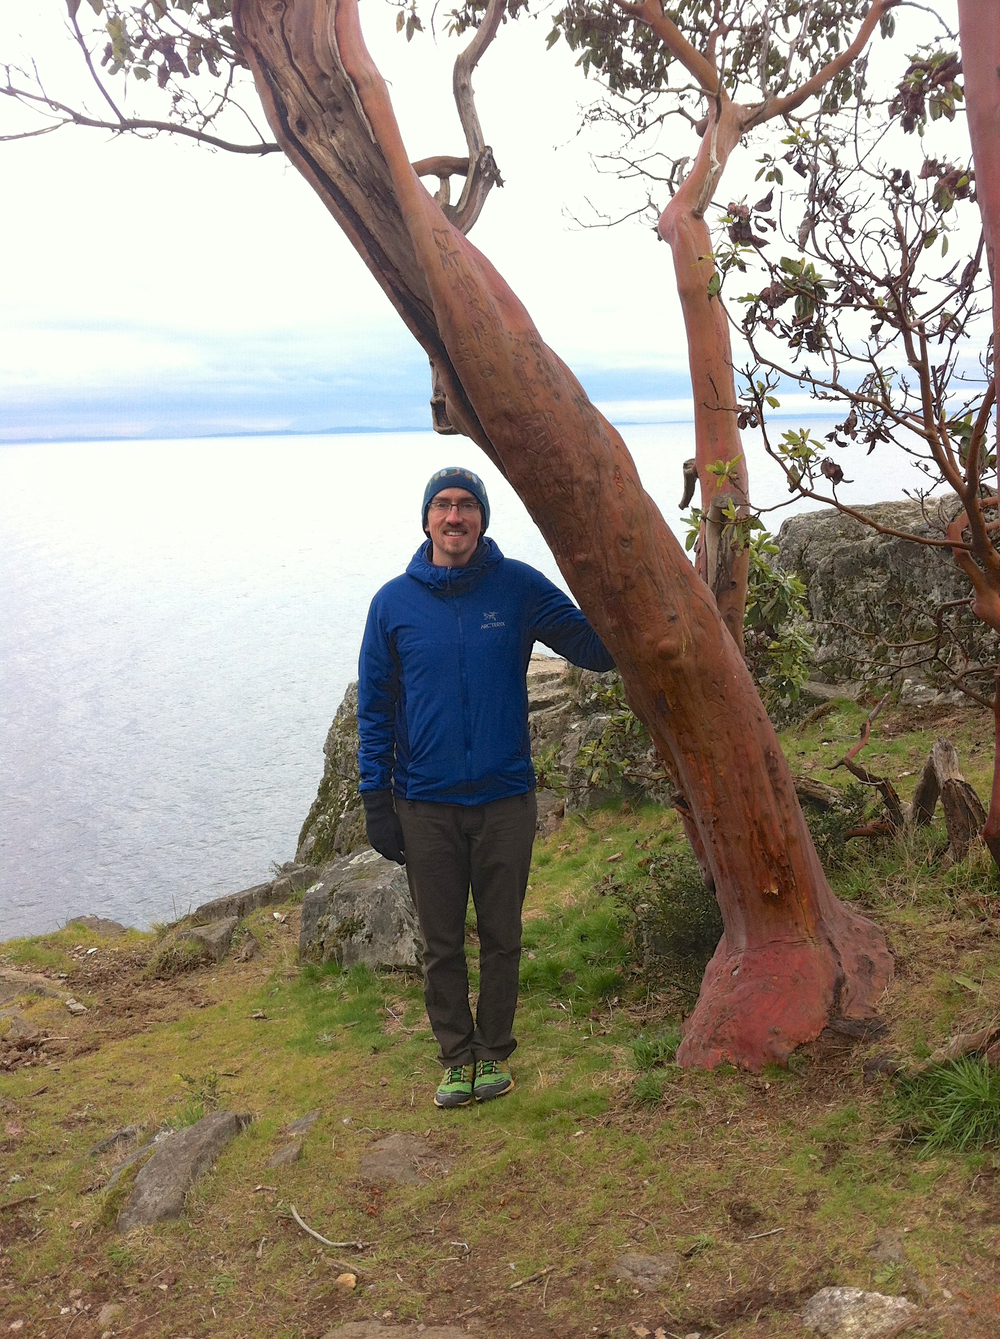 Me and Madron (Arbutus menziesii) at Lighthouse Park, West Vancouver.